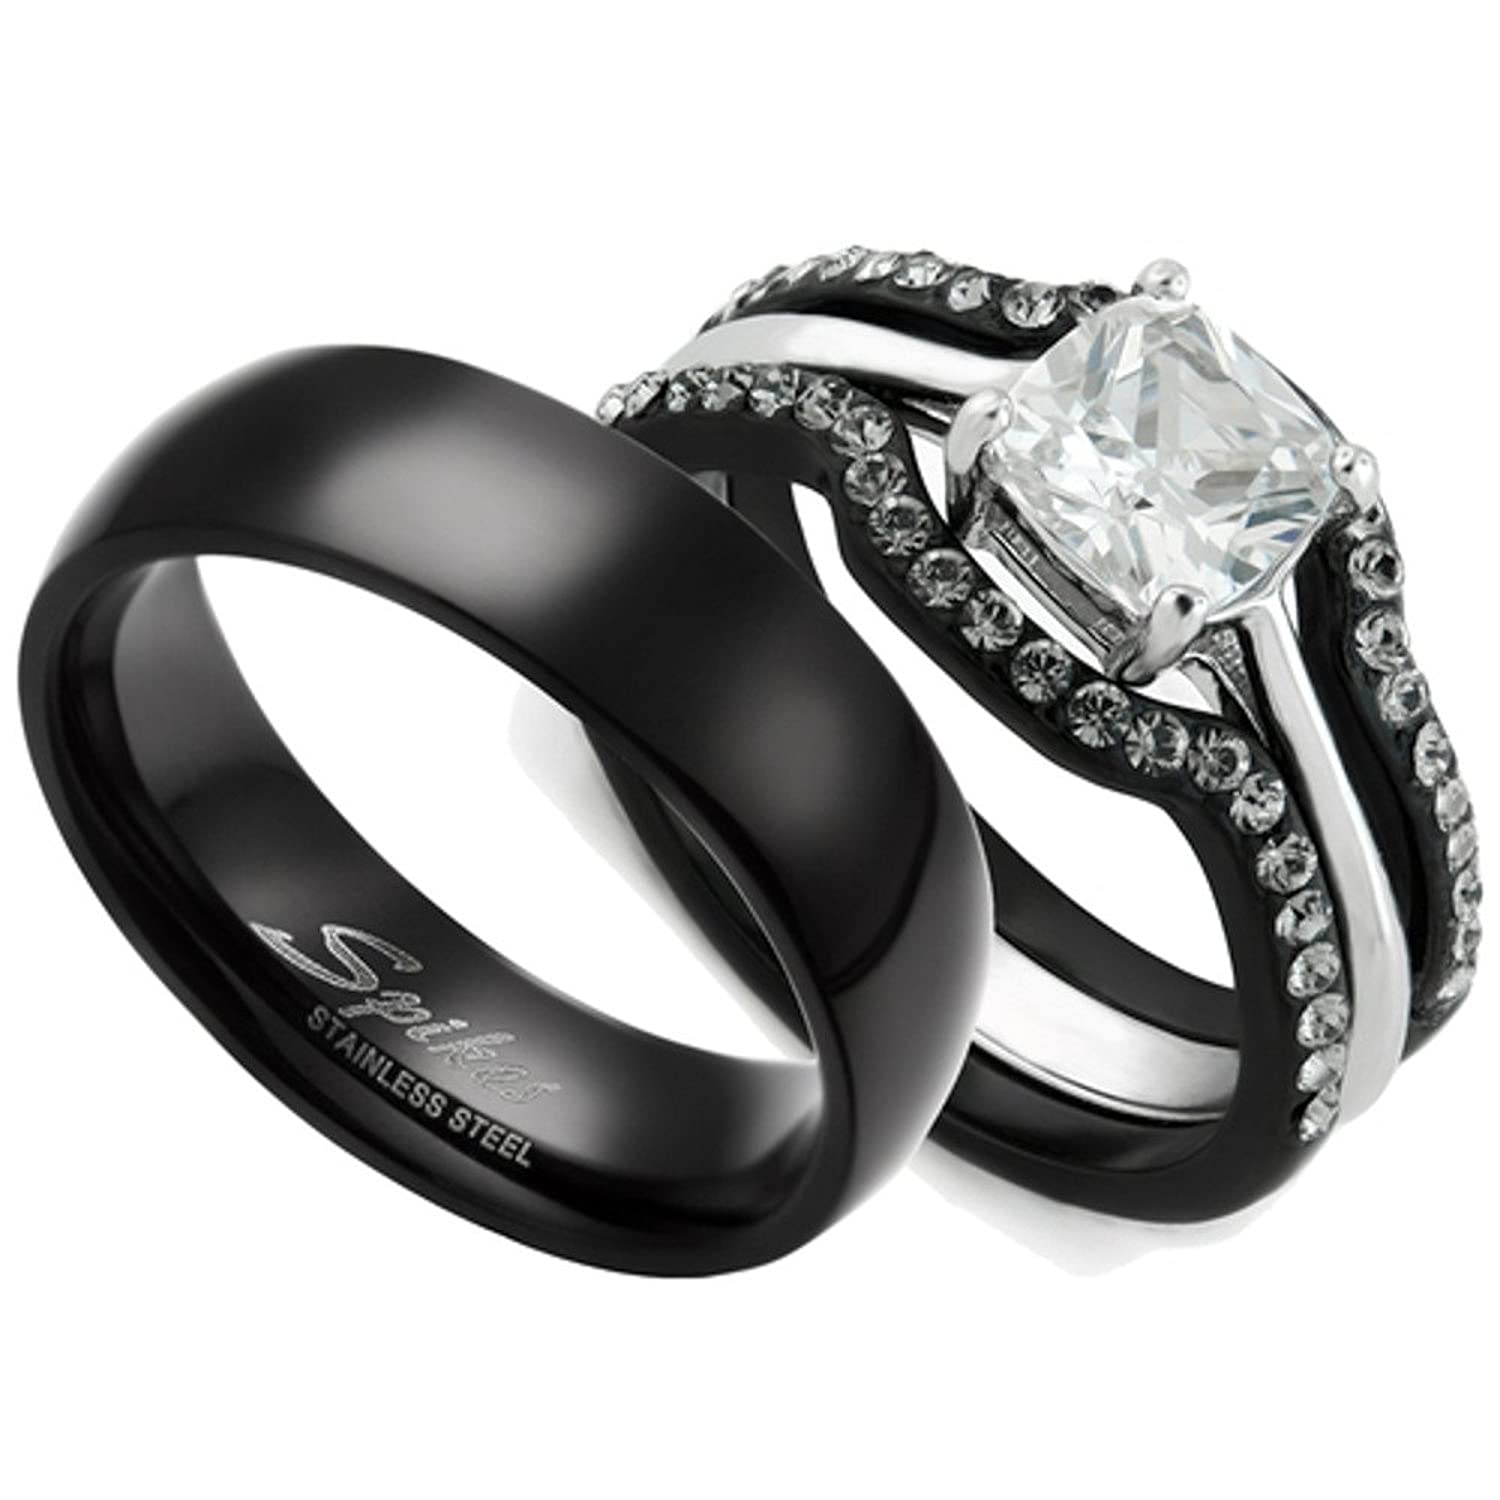 ring steel ati tension set stainless rings engagement jewelry h mens cz bling